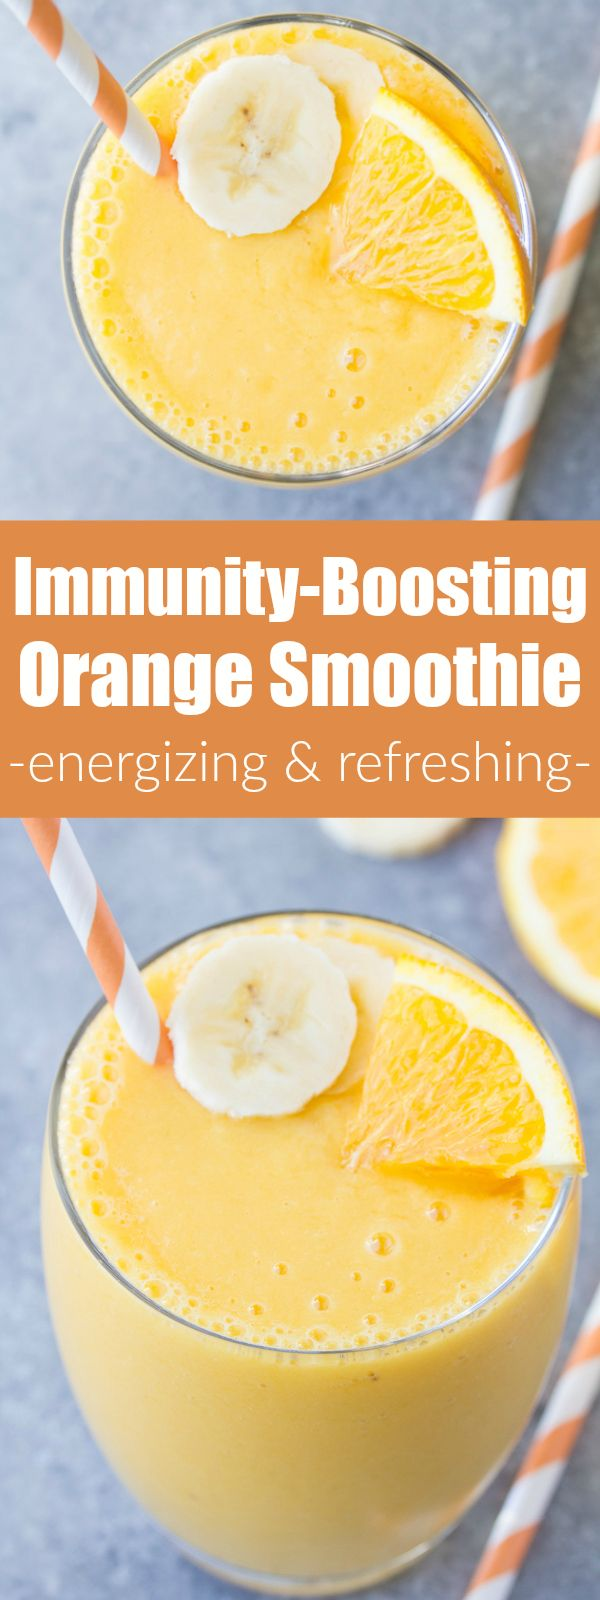 Immunity Boosting Orange Smoothie! This healthy smoothie packs a hefty dose of vitamin C! With orange, mango, banana and vanilla. | www.kristineskitchenblog.com